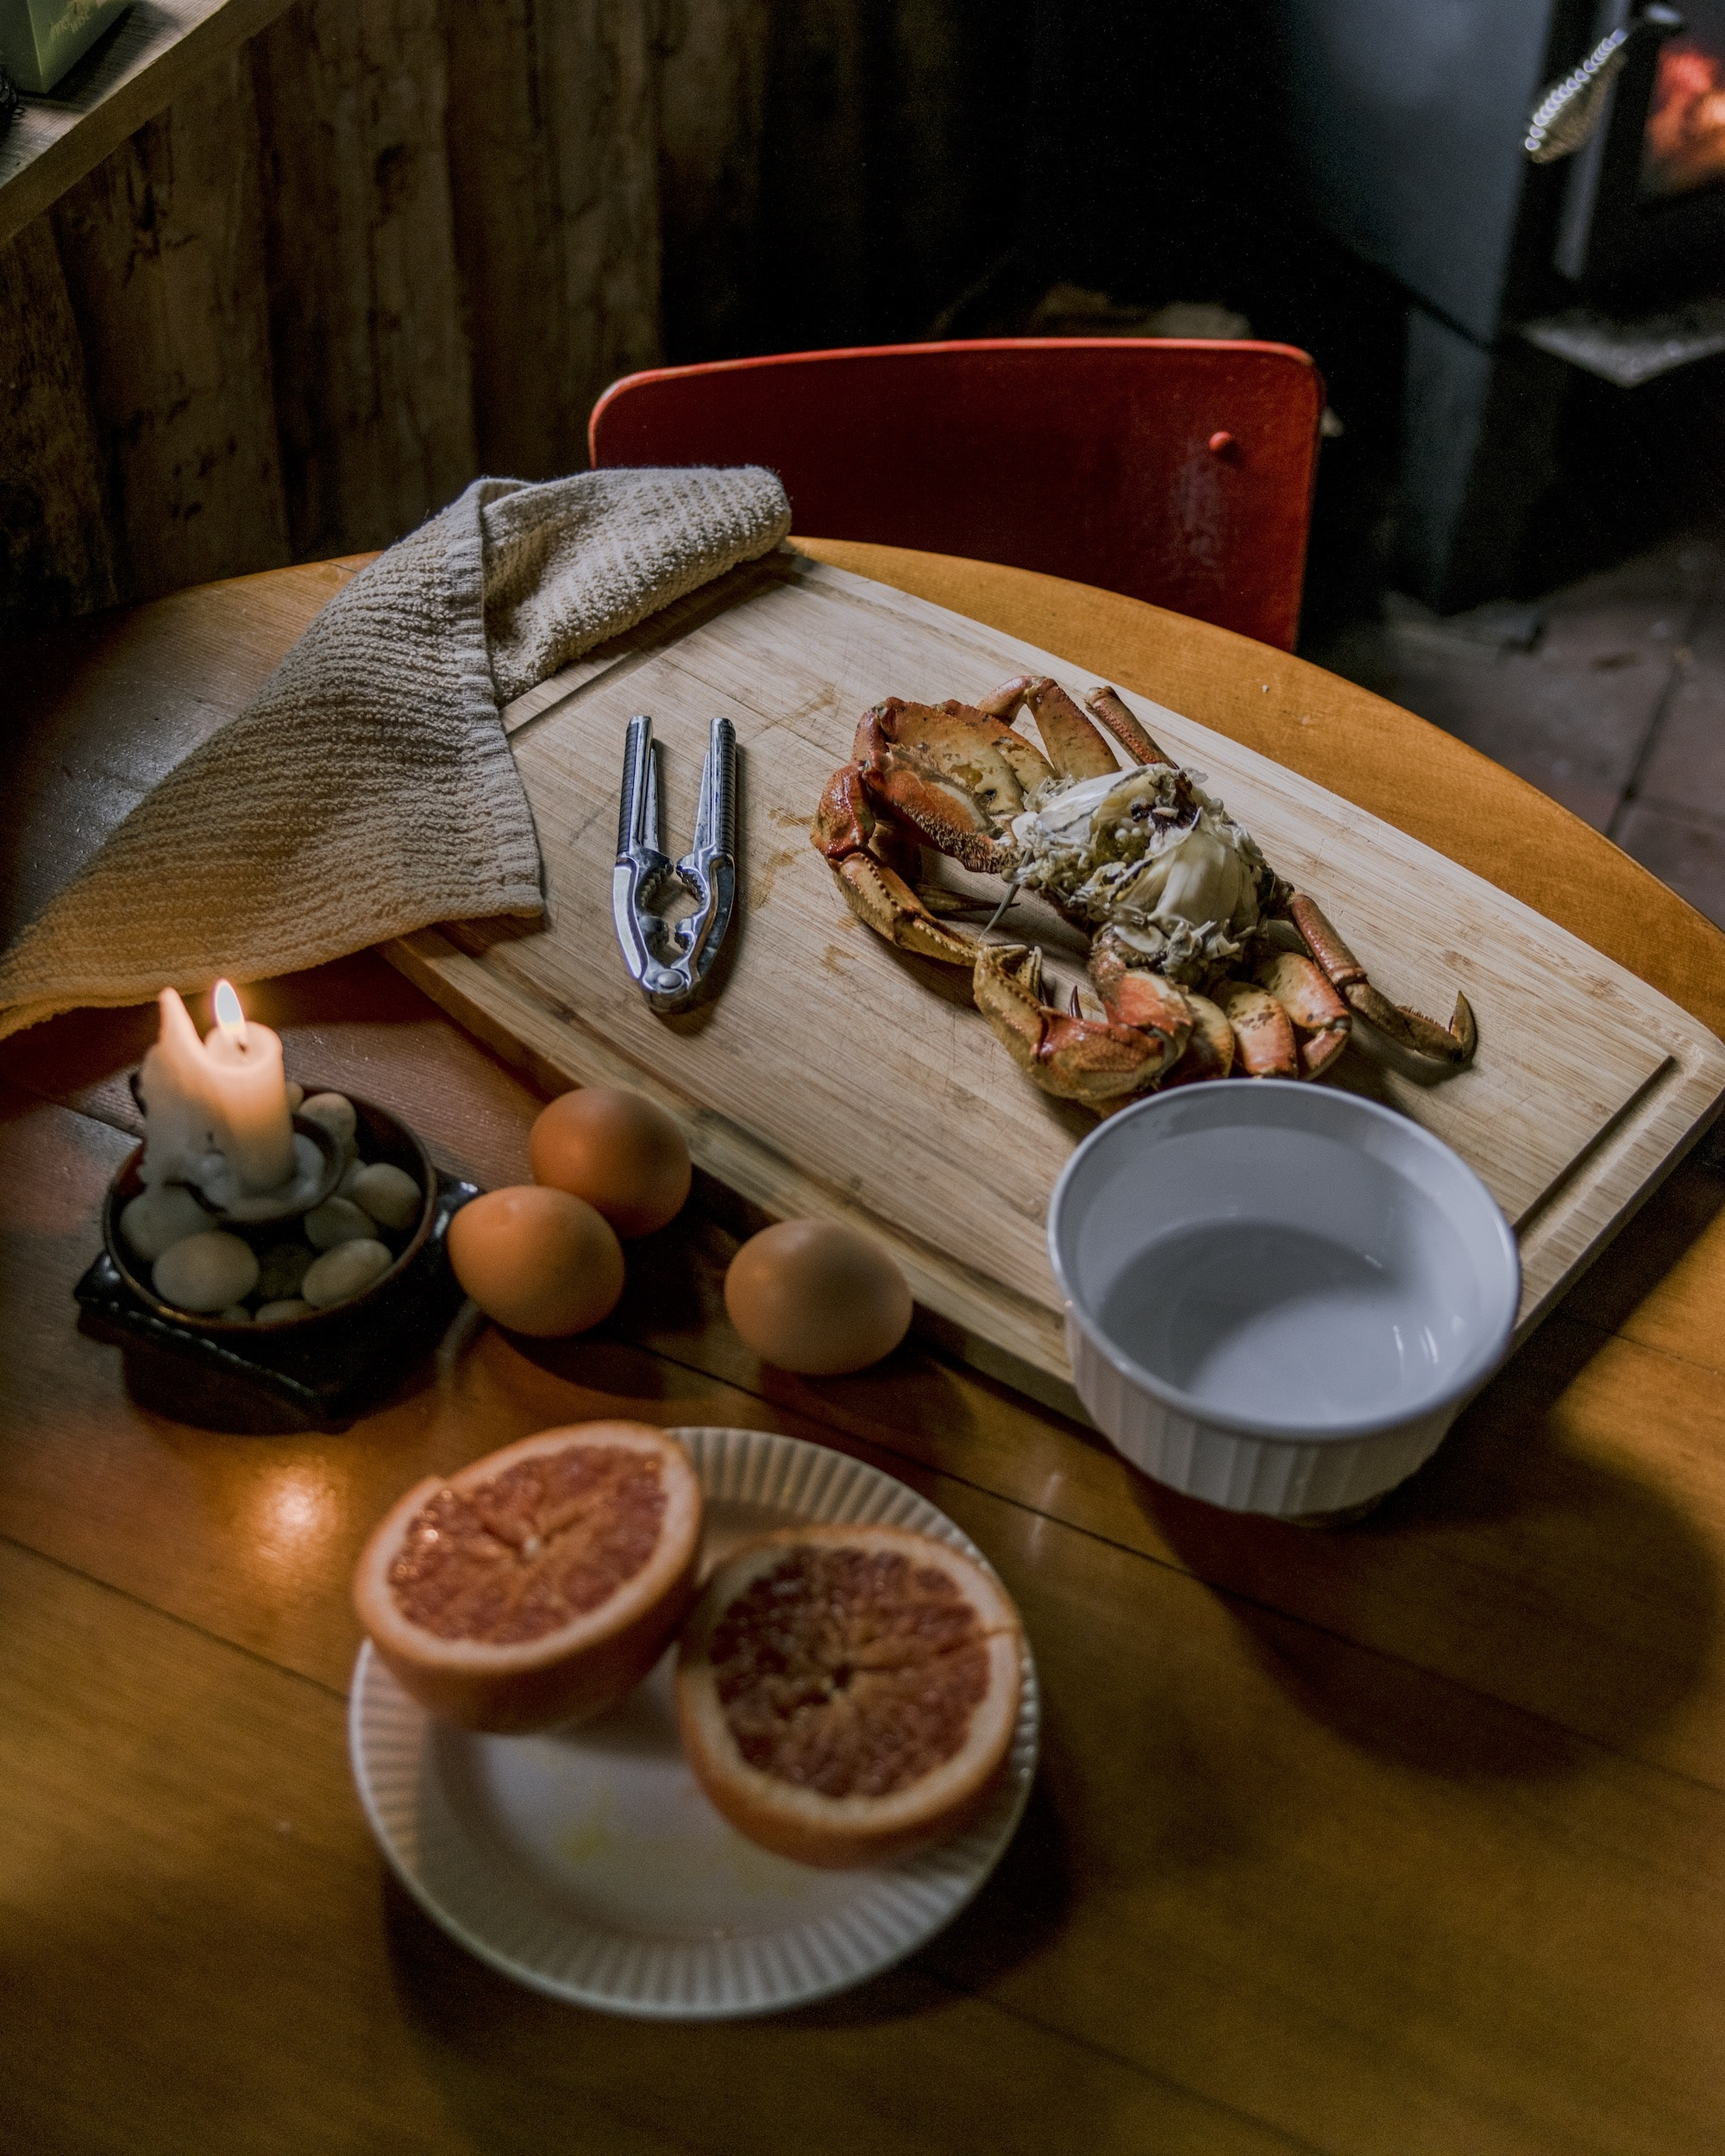 A meal of Dungeness crab at a home in the Haida village of Gaaw